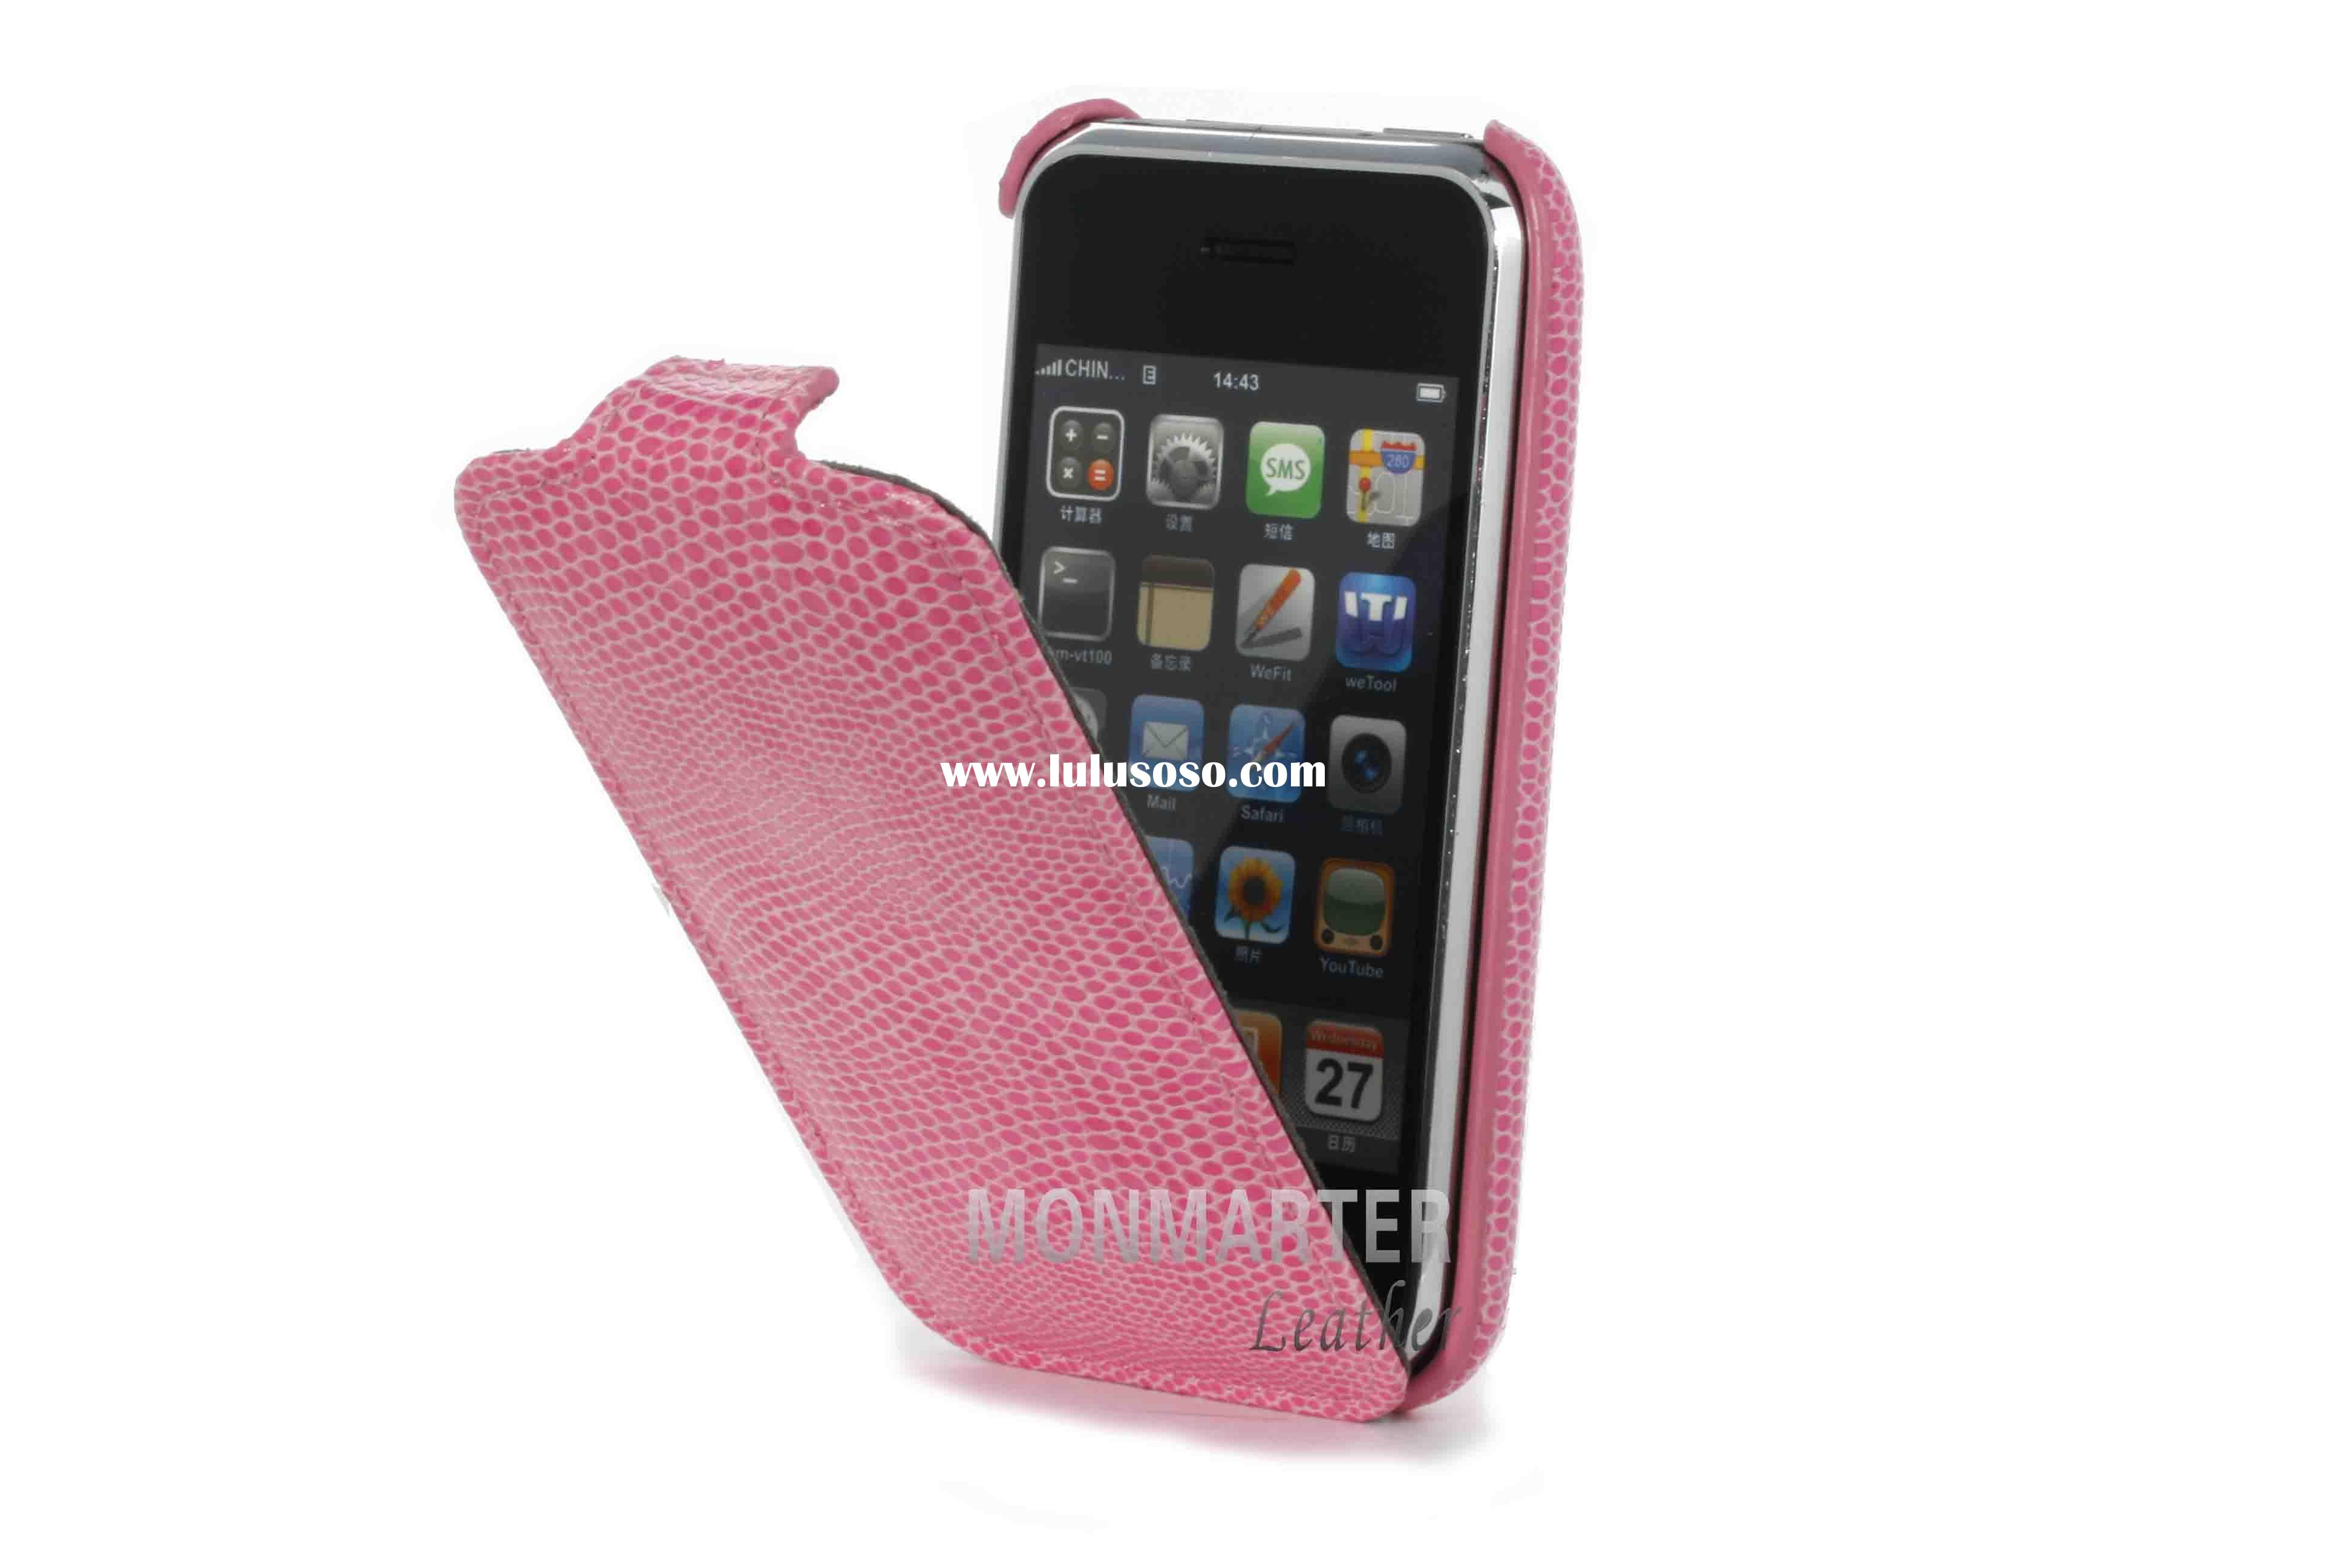 Snakeskin Pattern Pink Leather CLAM Case For iPhone 3GS/3G